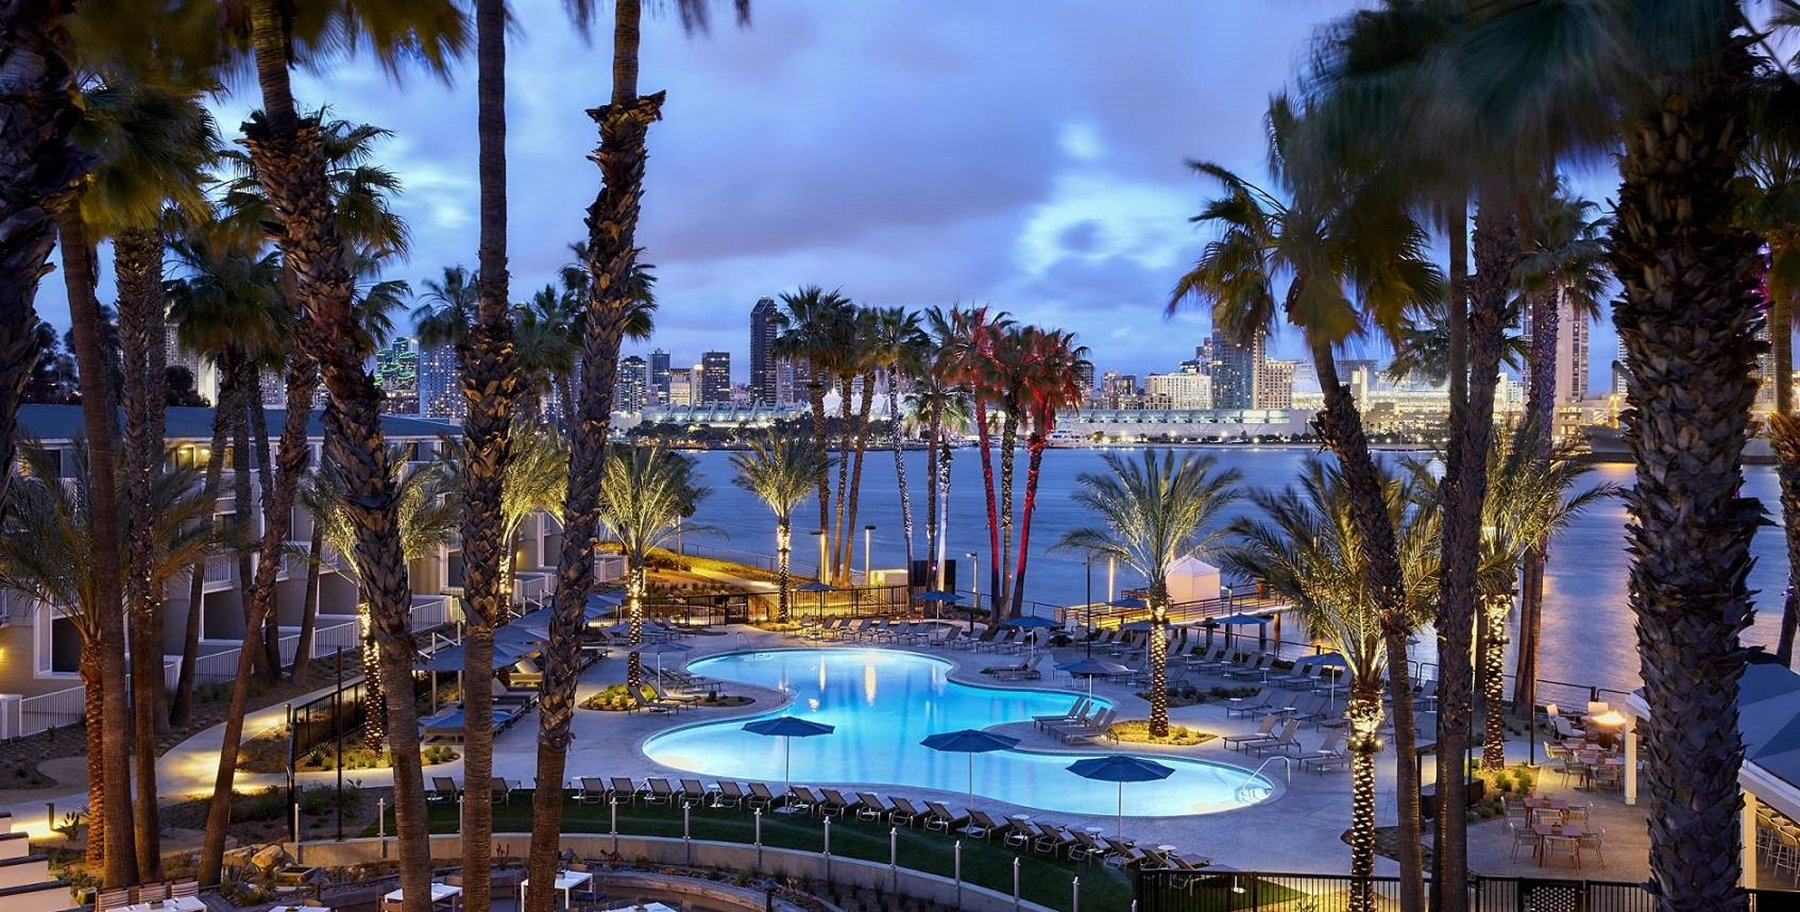 View of the pool with ALBACA dining view of San Diego